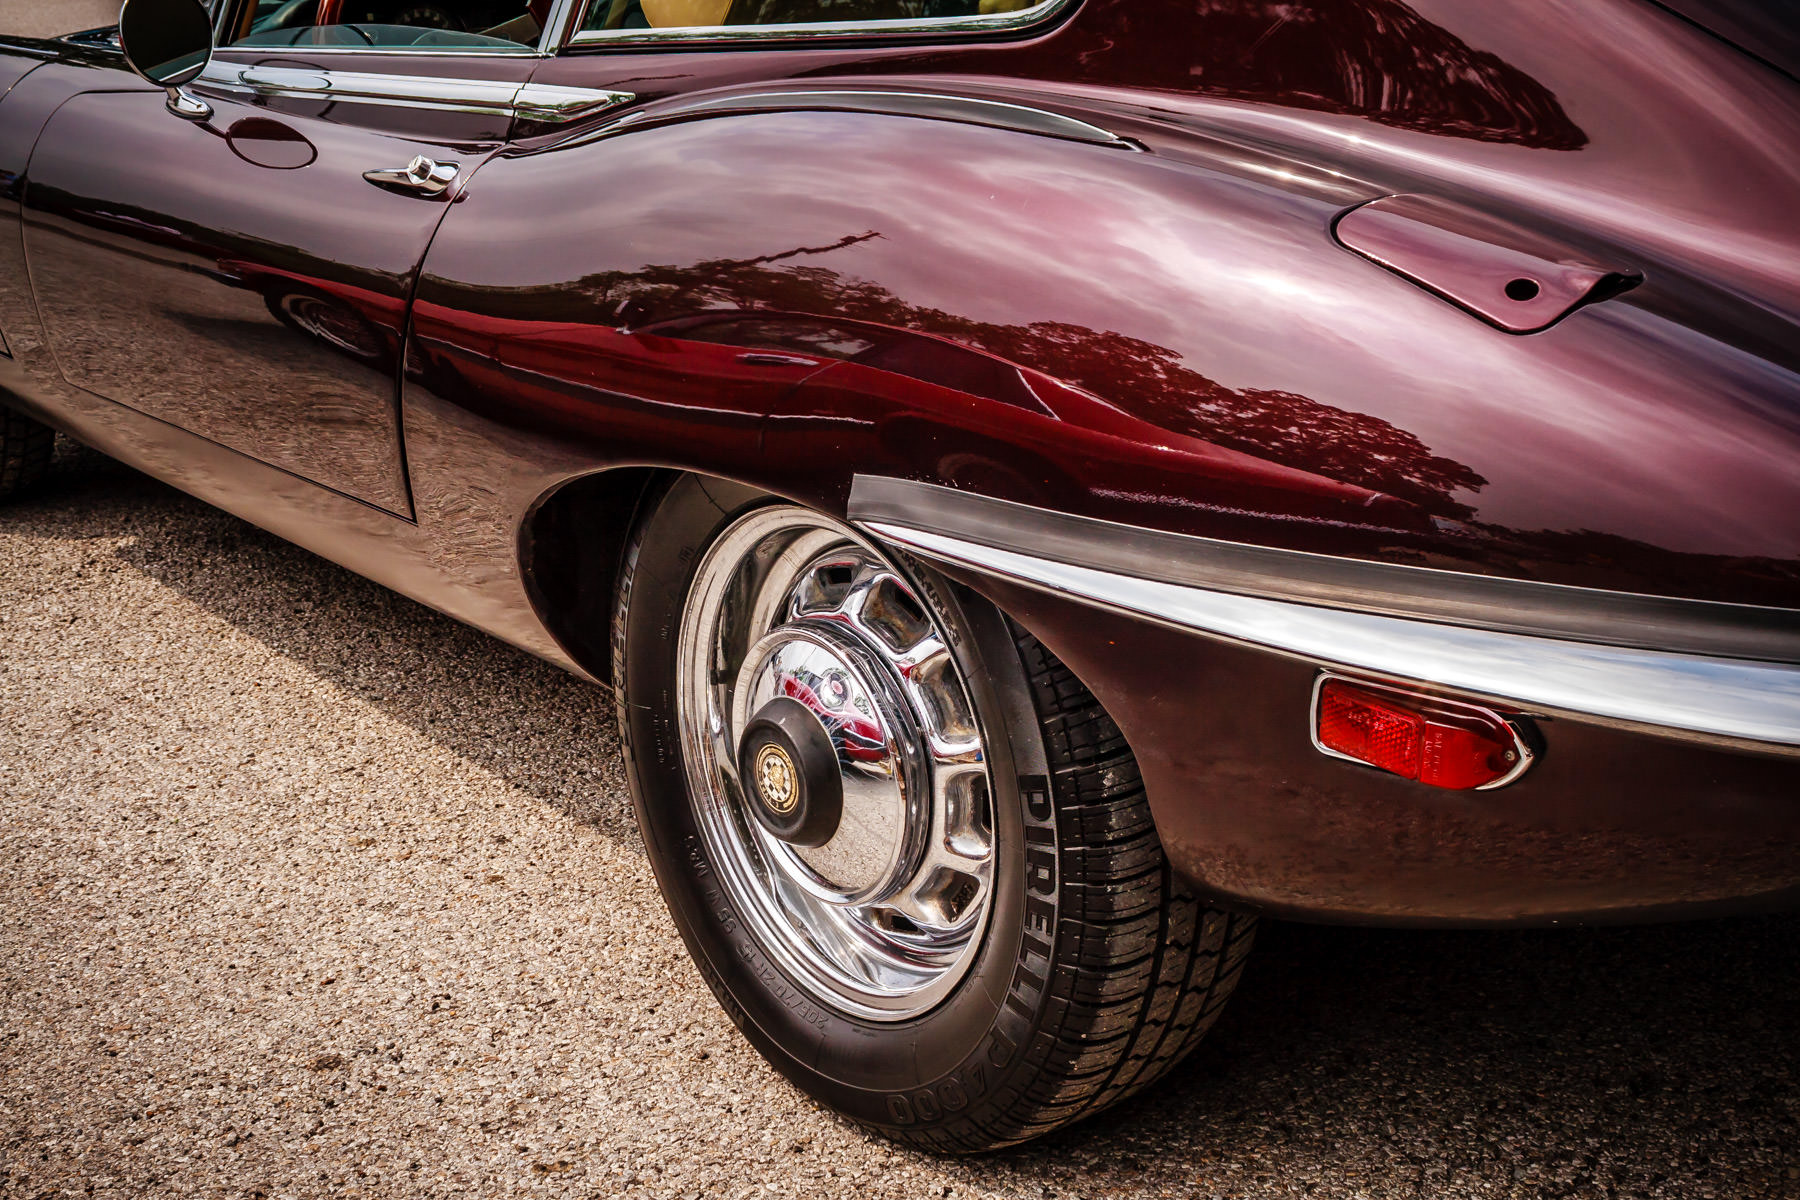 A Jaguar E-Type at Dallas' All British and European Car Day.